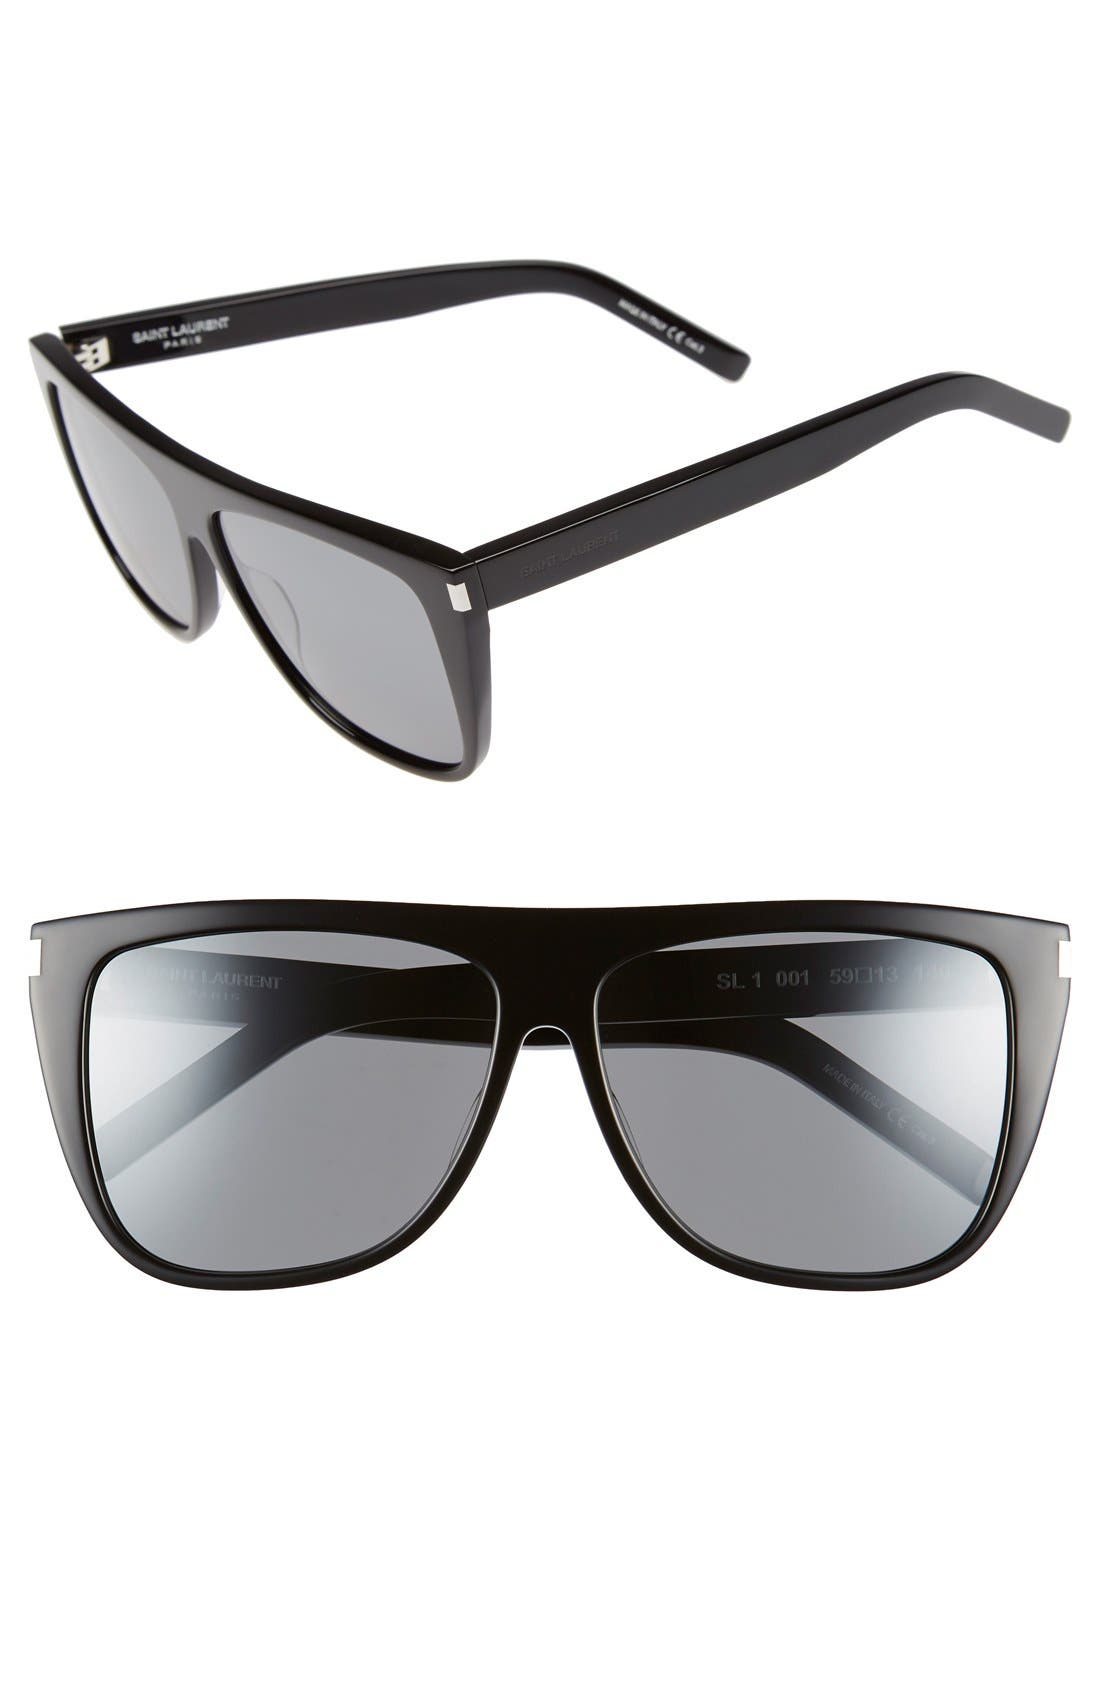 Main Image - Saint Laurent SL1 59mm Flat Top Sunglasses